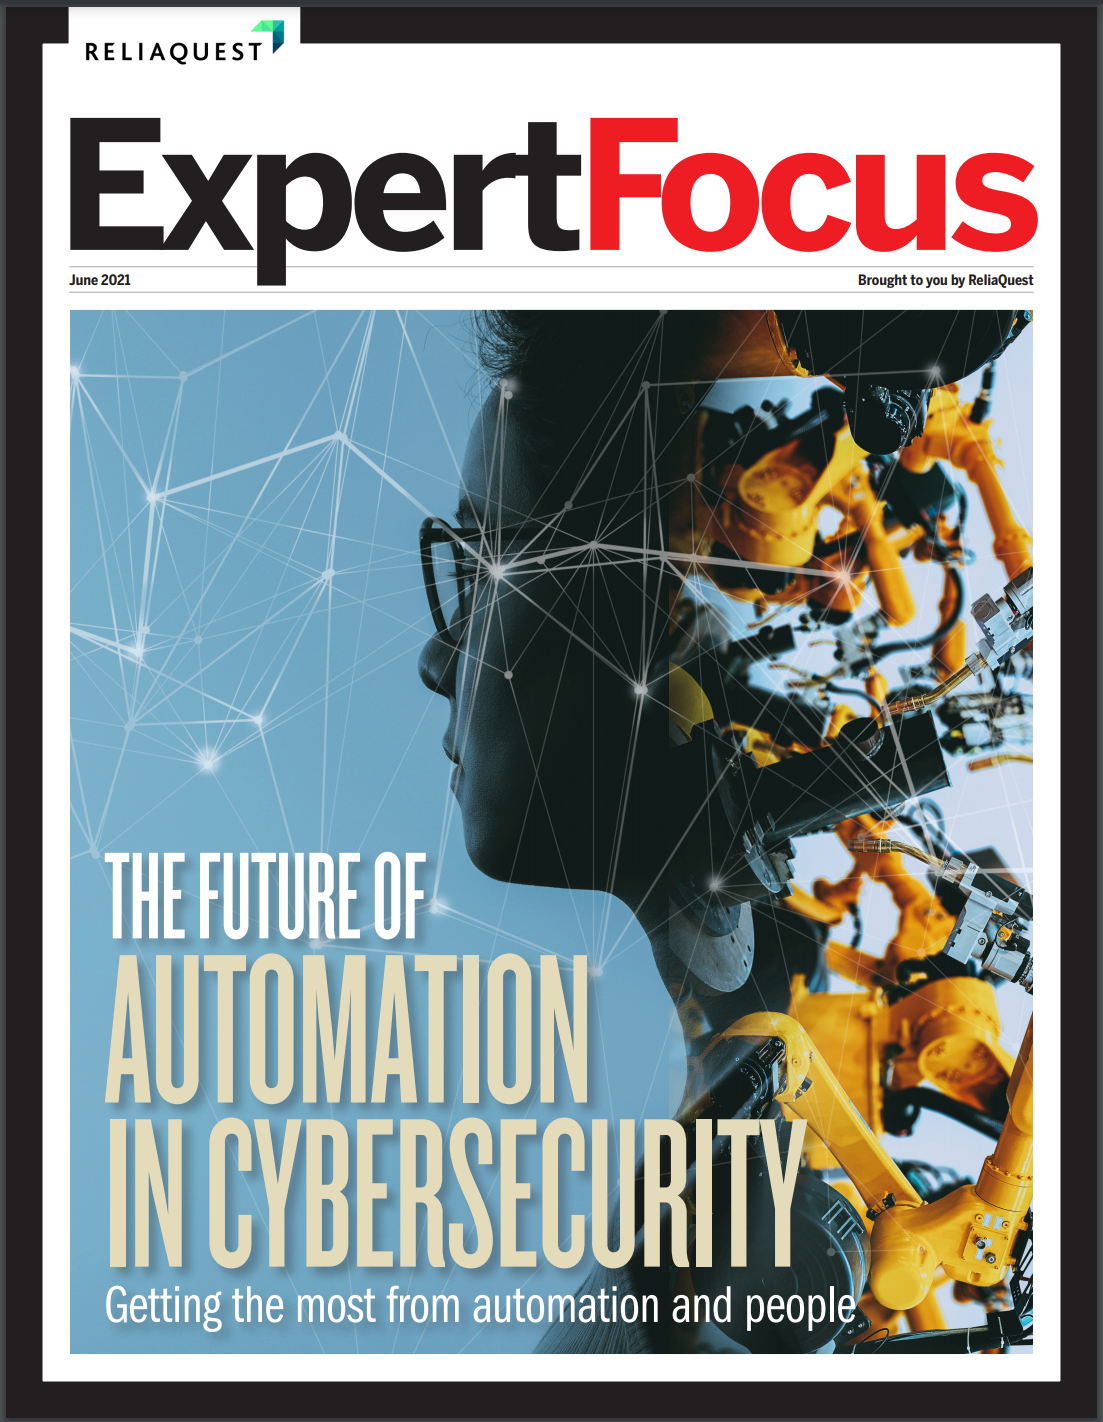 The future of automation in cybersecurity